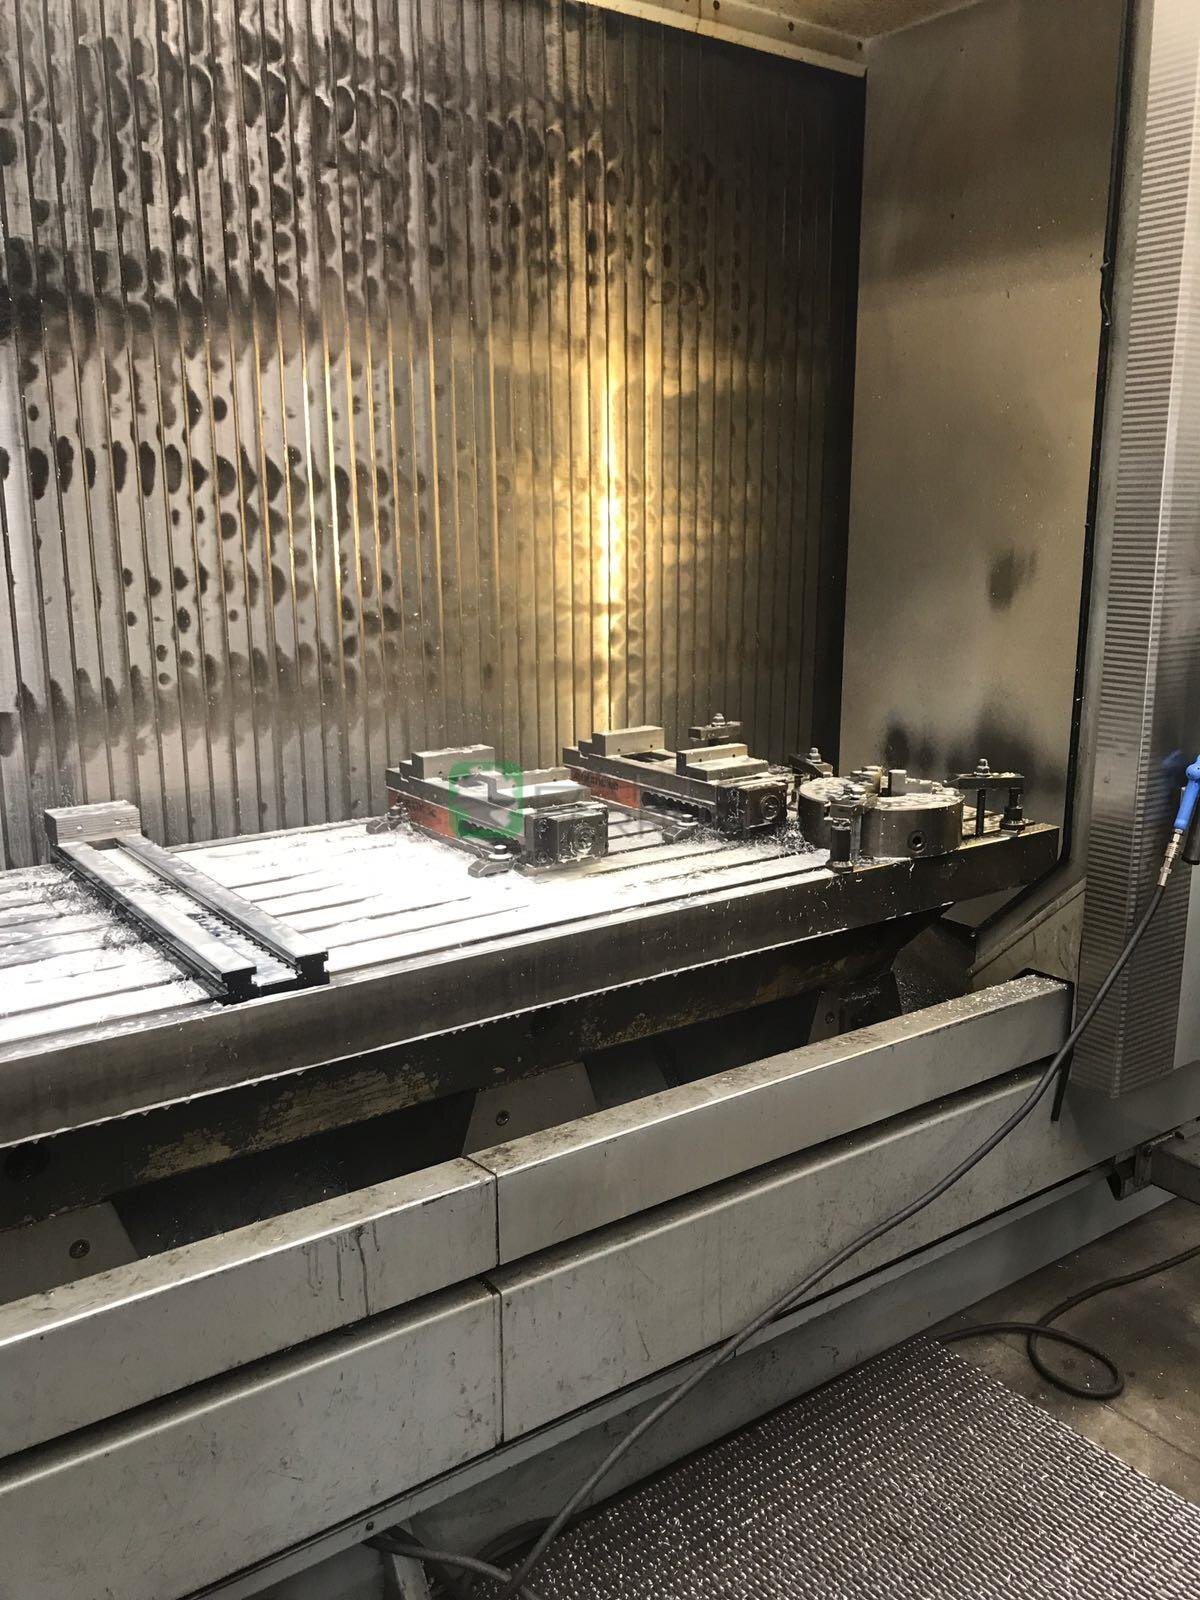 DMG DMF 250 LINEAR center (3)